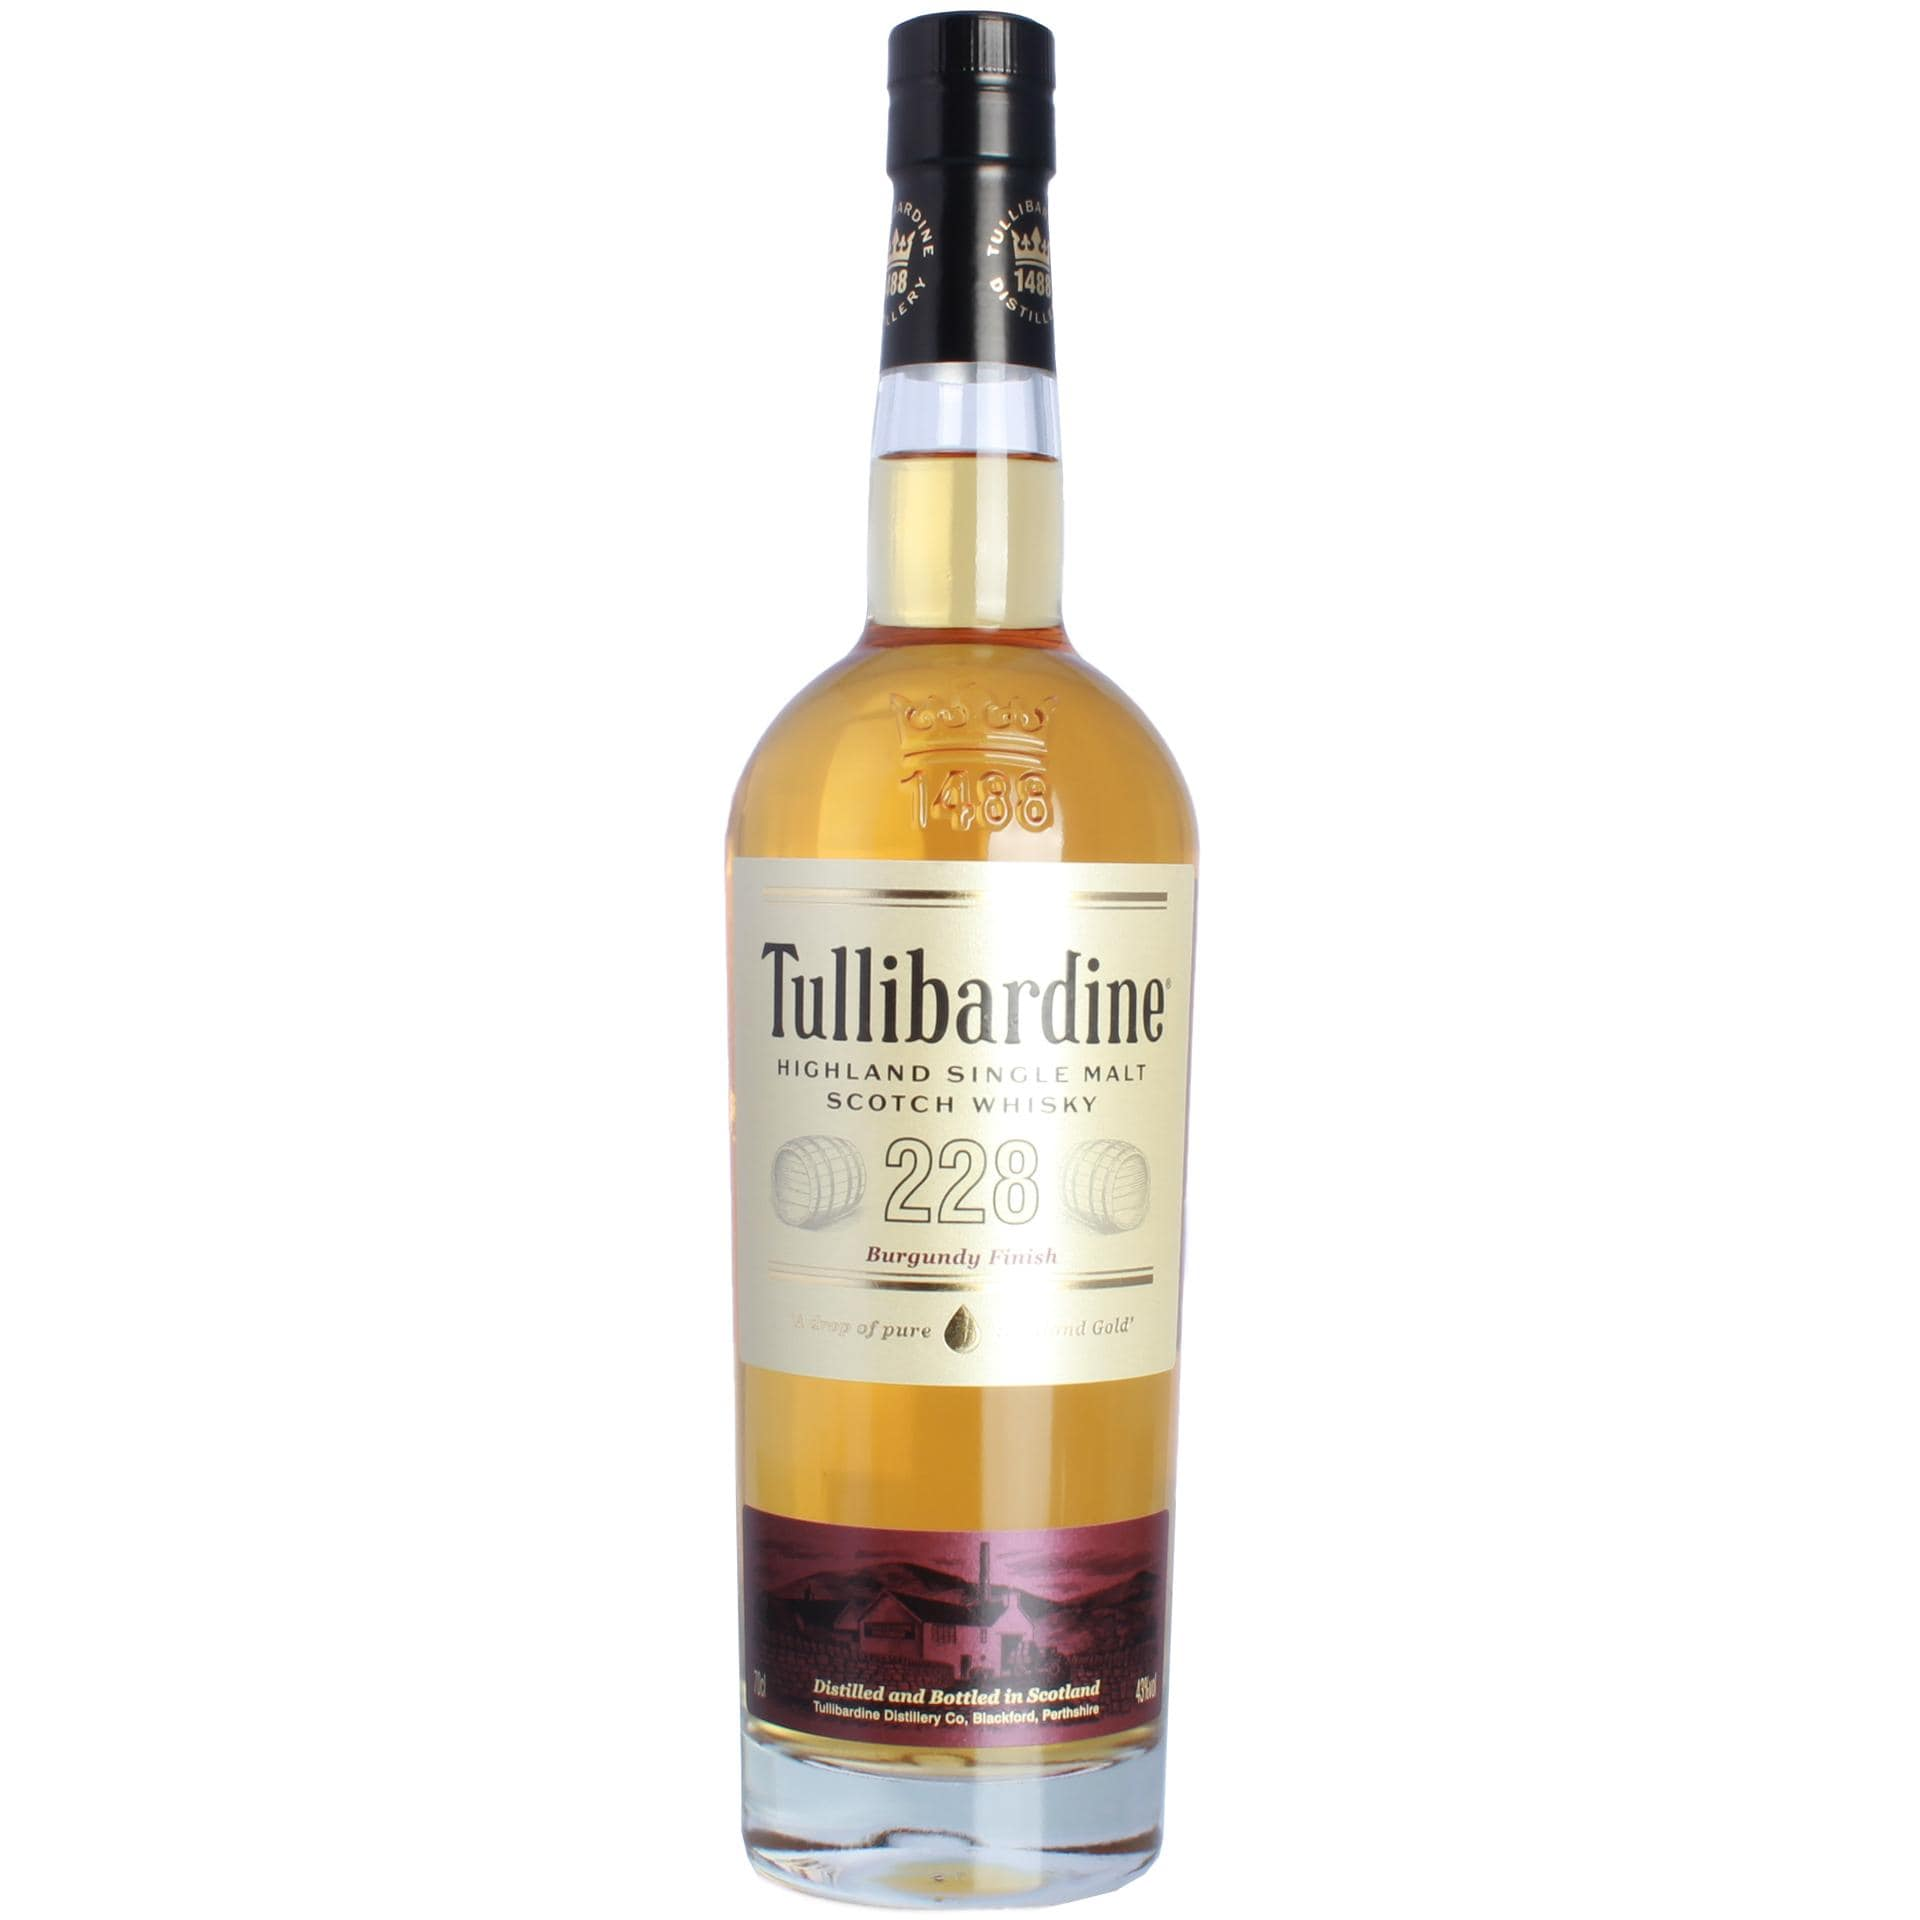 Tullibardine 228 Burgundy Finish Scotch Whisky 0,7l